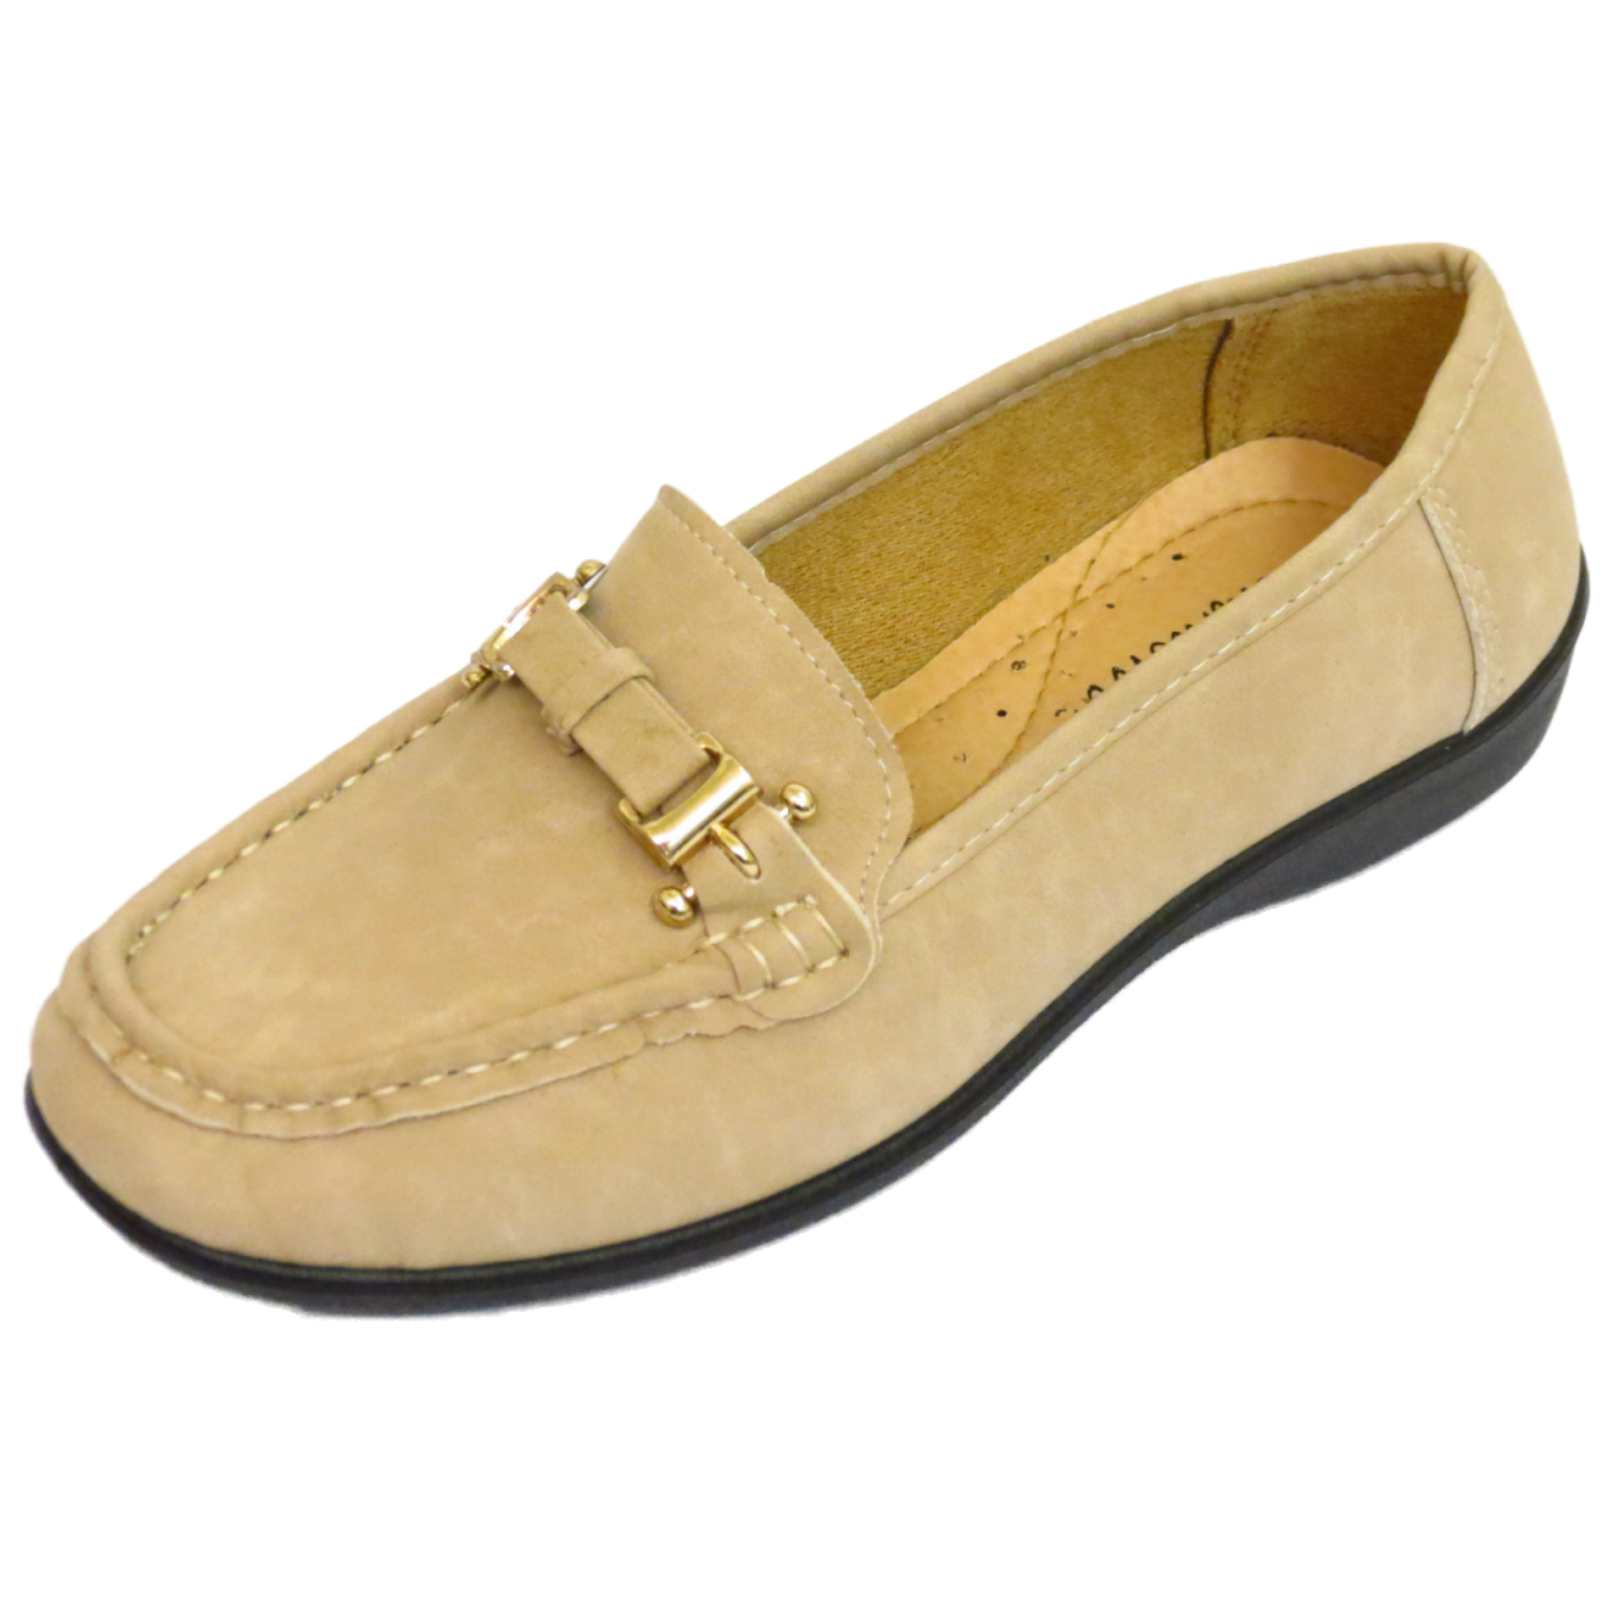 WOMENS BEIGE COMFORT SHOES COMFY WORK CASUAL SLIP-ON FLAT LOAFERS SIZES 3-8 | EBay